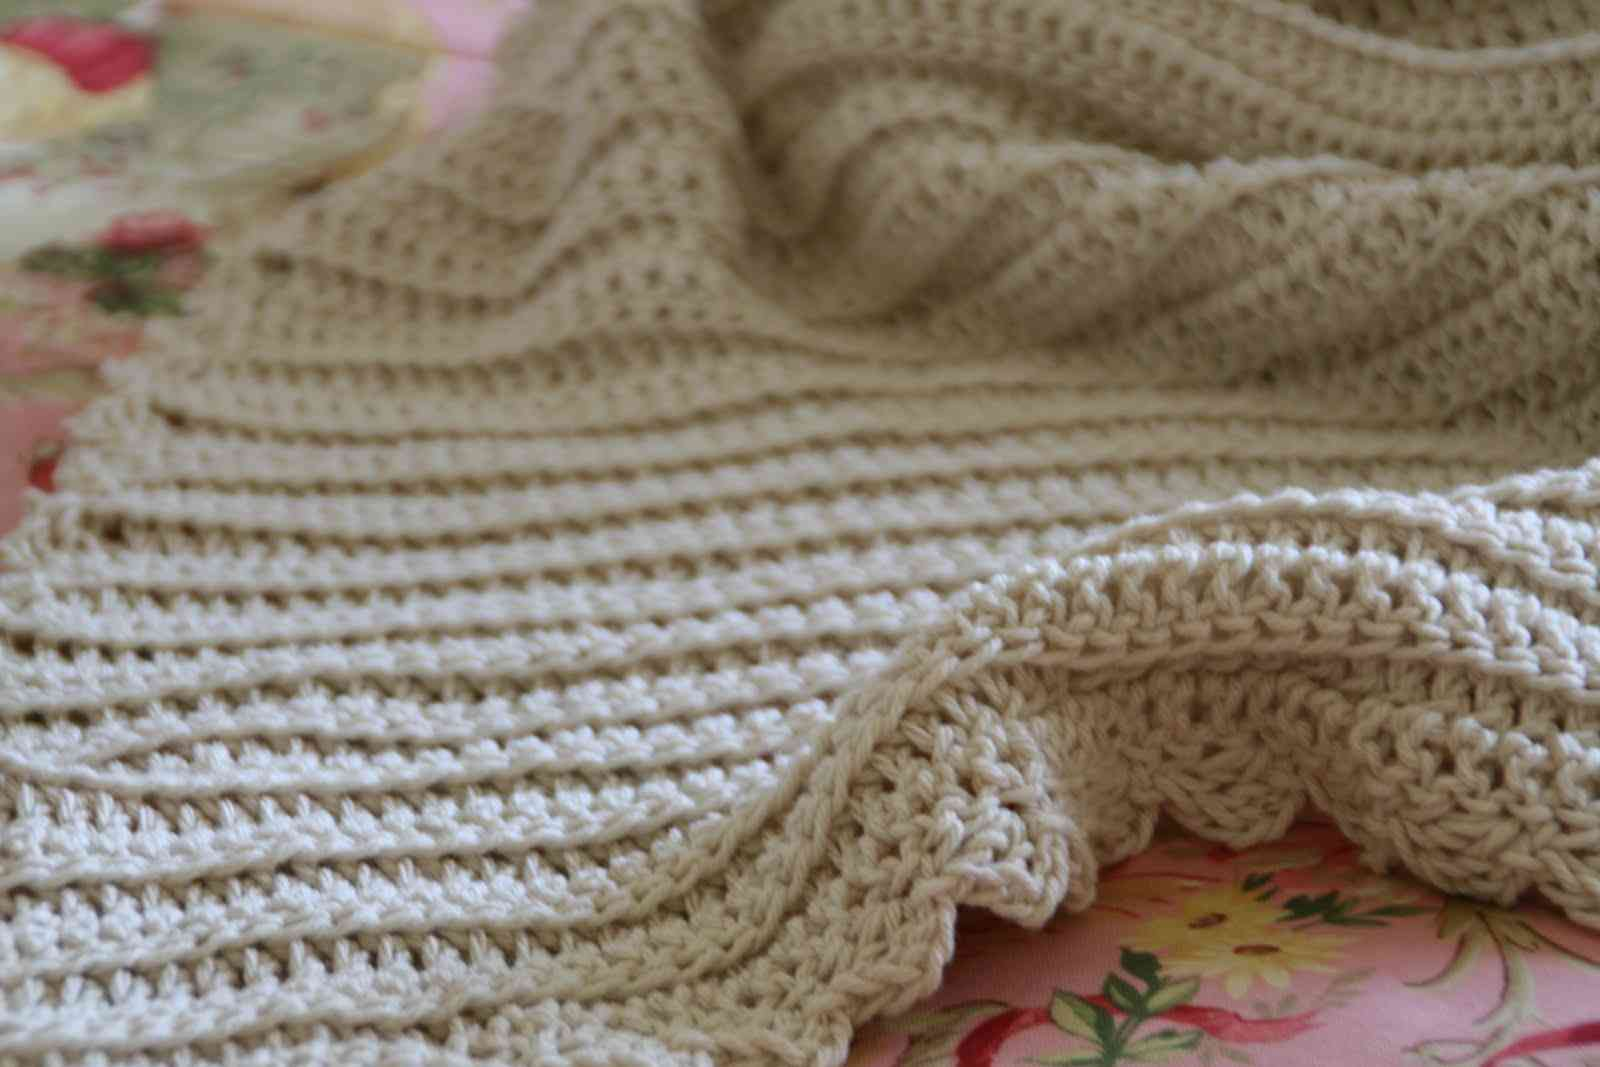 Crocheting Easy Baby Blanket : crochet baby blanket 400x266 15 Most Popular Free Crochet Baby Blanket ...